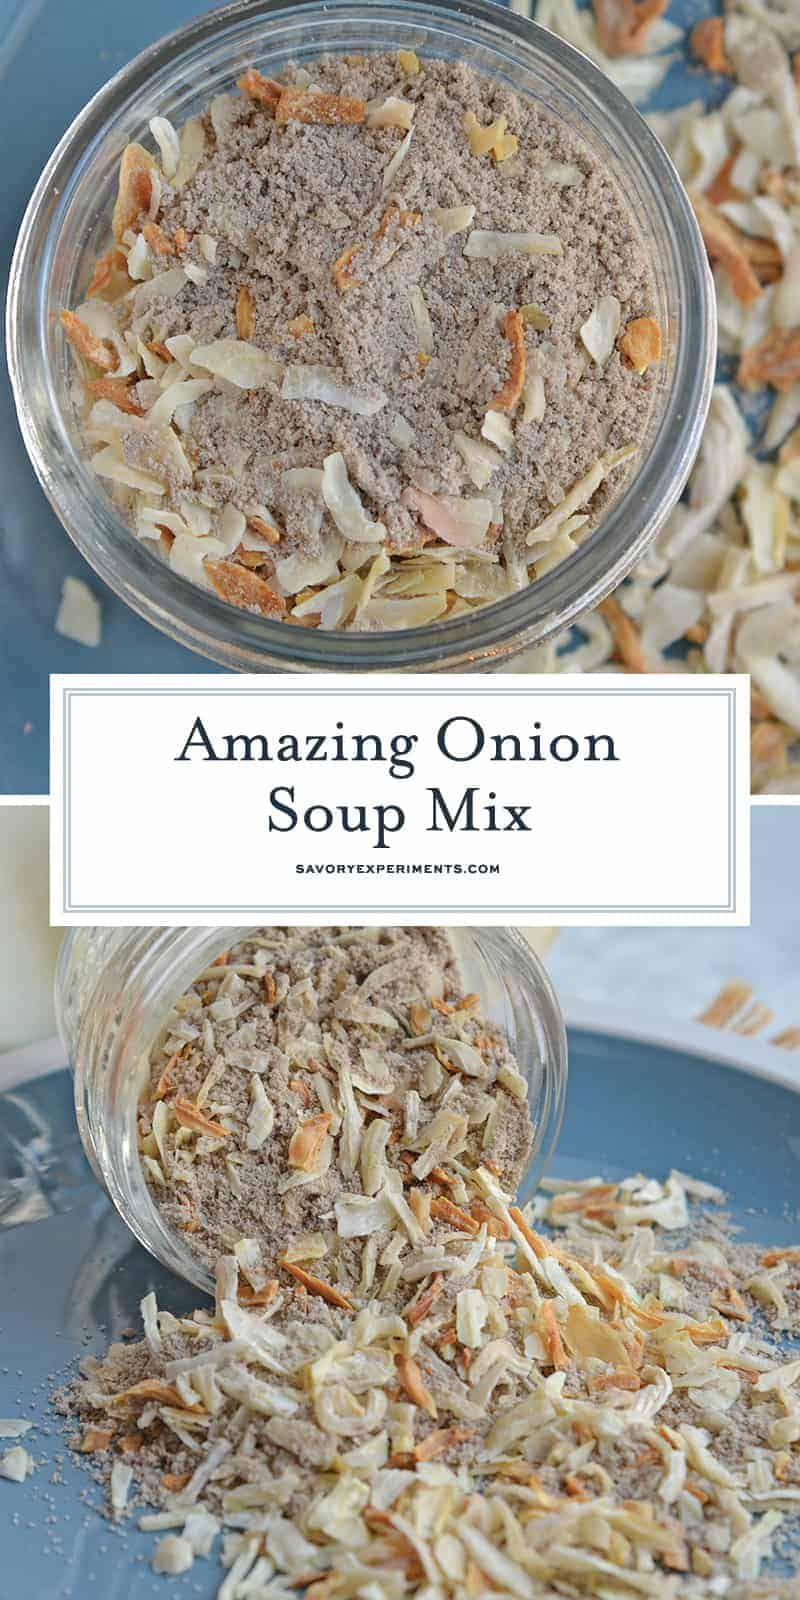 Onion Soup Mix - A DIY Homemade Onion Soup Mix Recipe